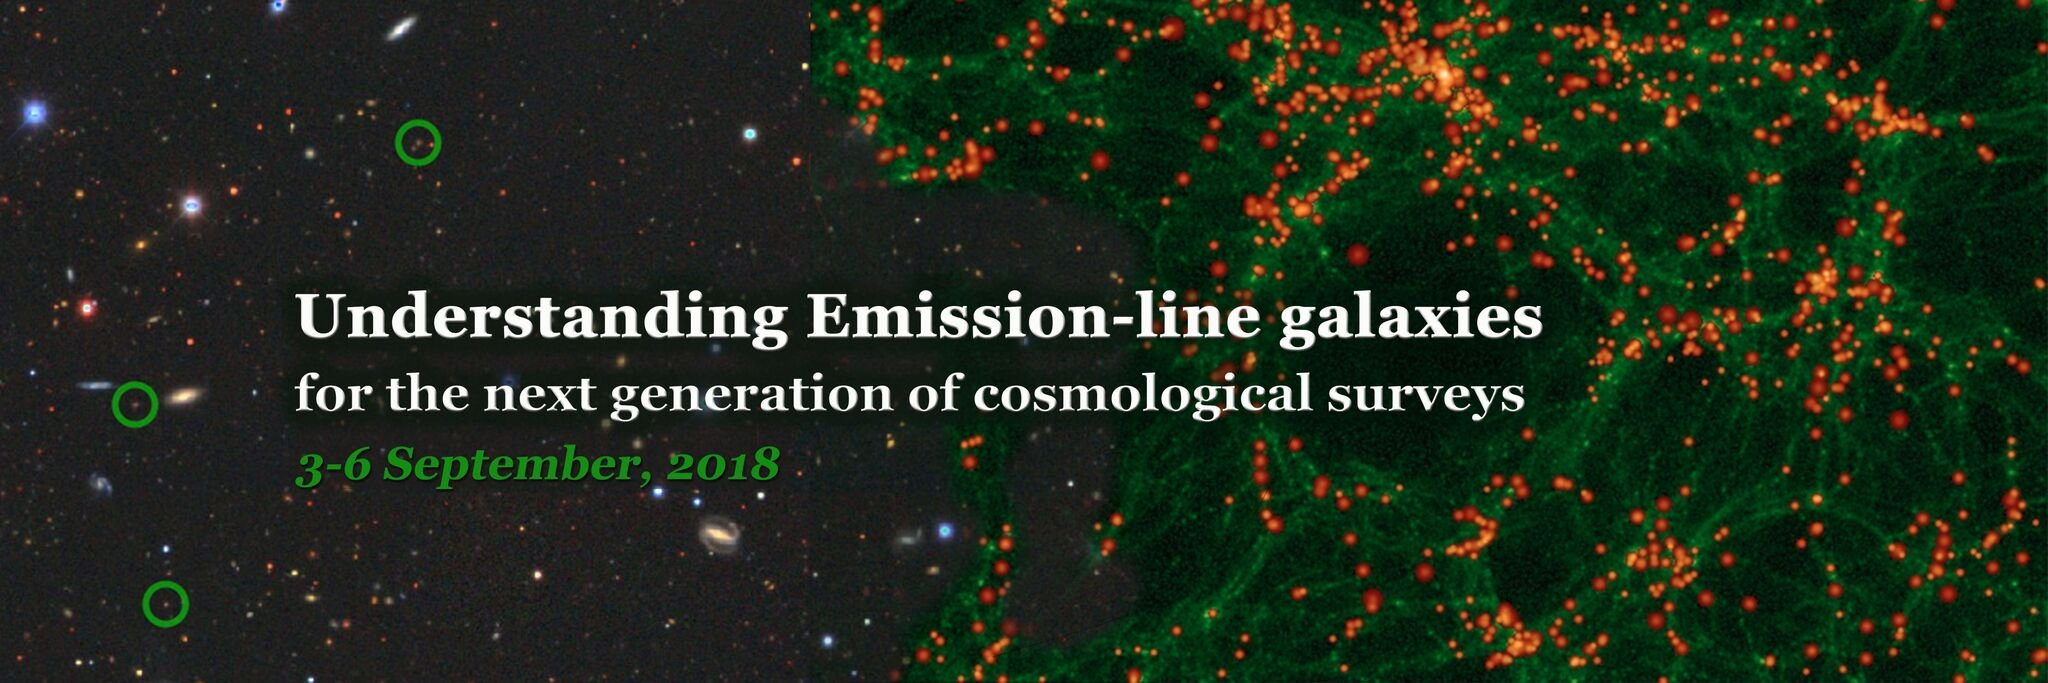 Meeting on Understanding Emission-line galaxies for the next generation of cosmological surveys